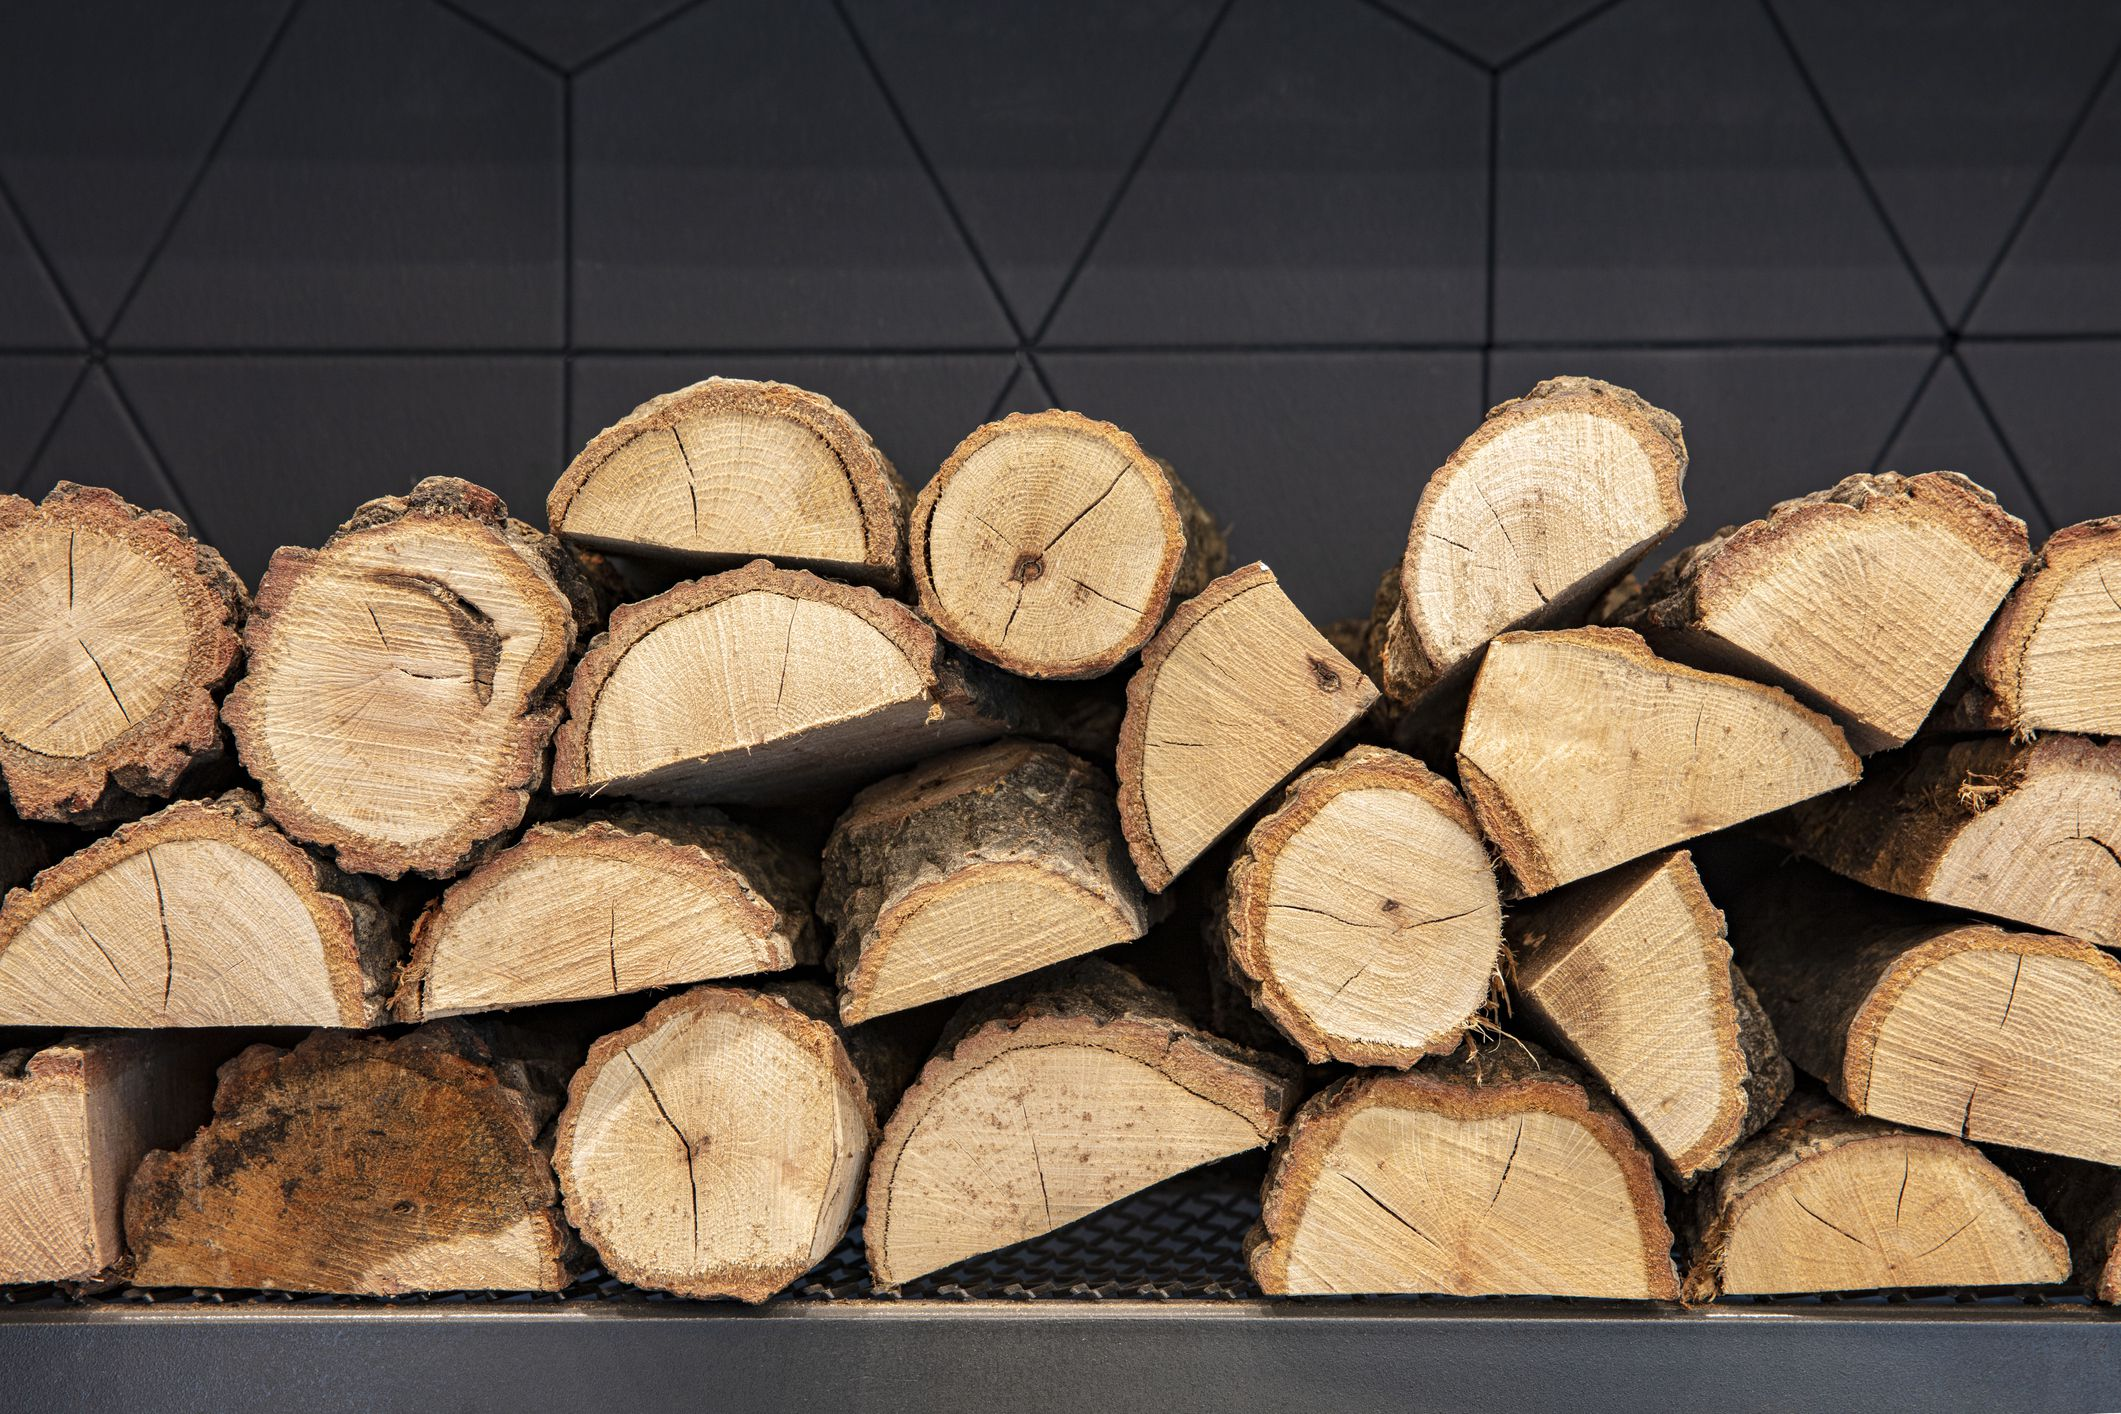 5 Places To Find Free Firewood Near You